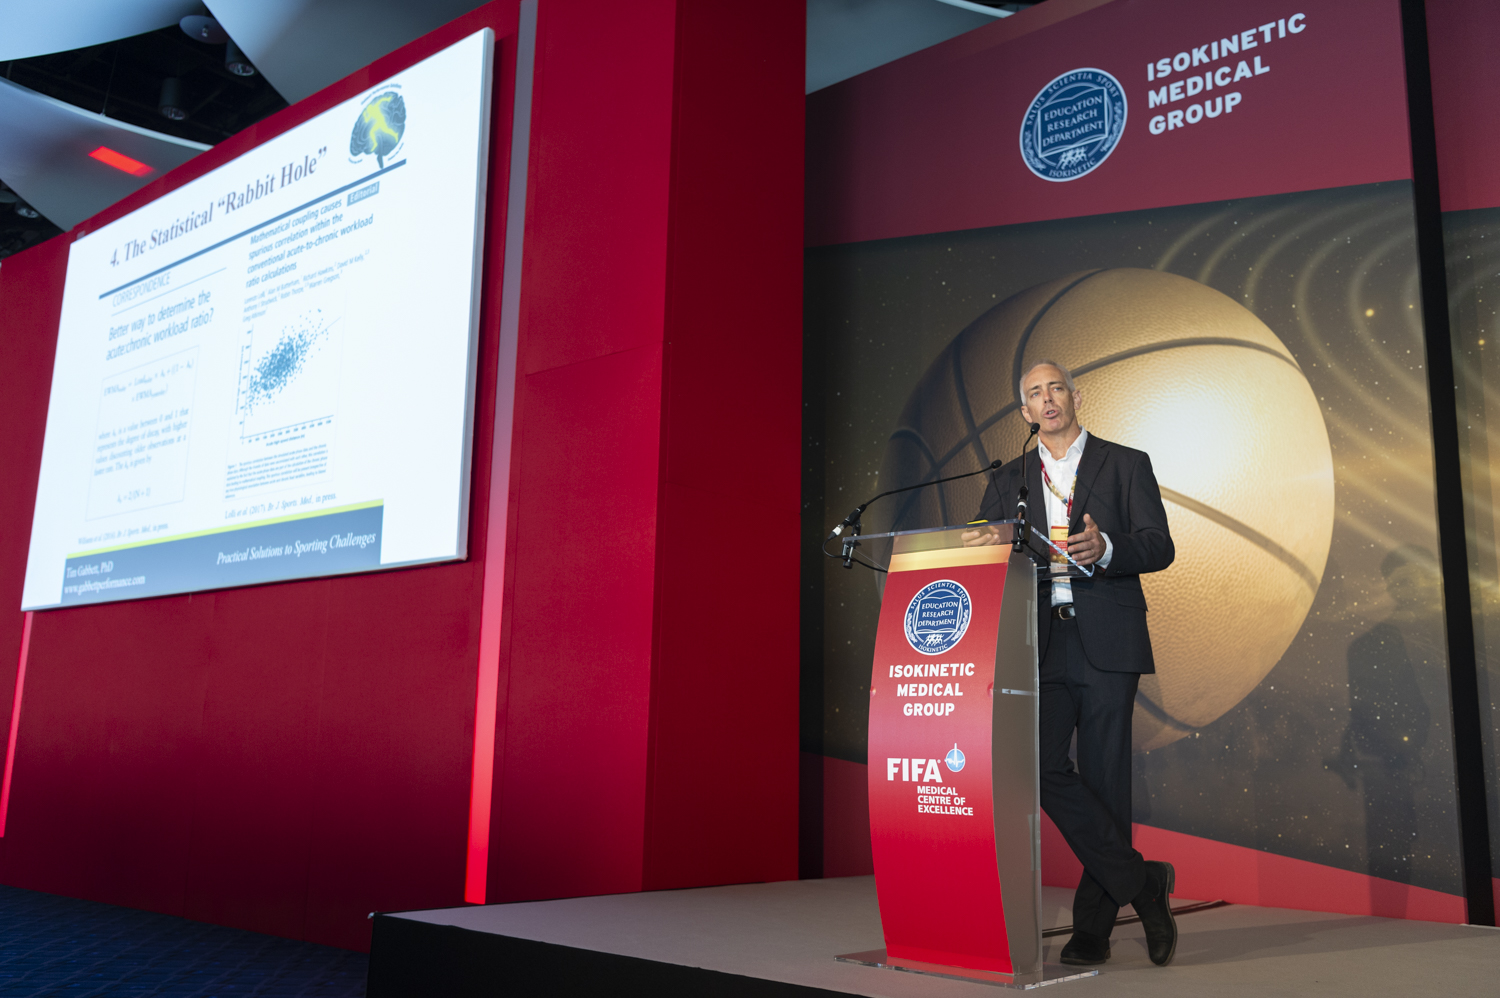 Presenting at the World Congress on Science and Football